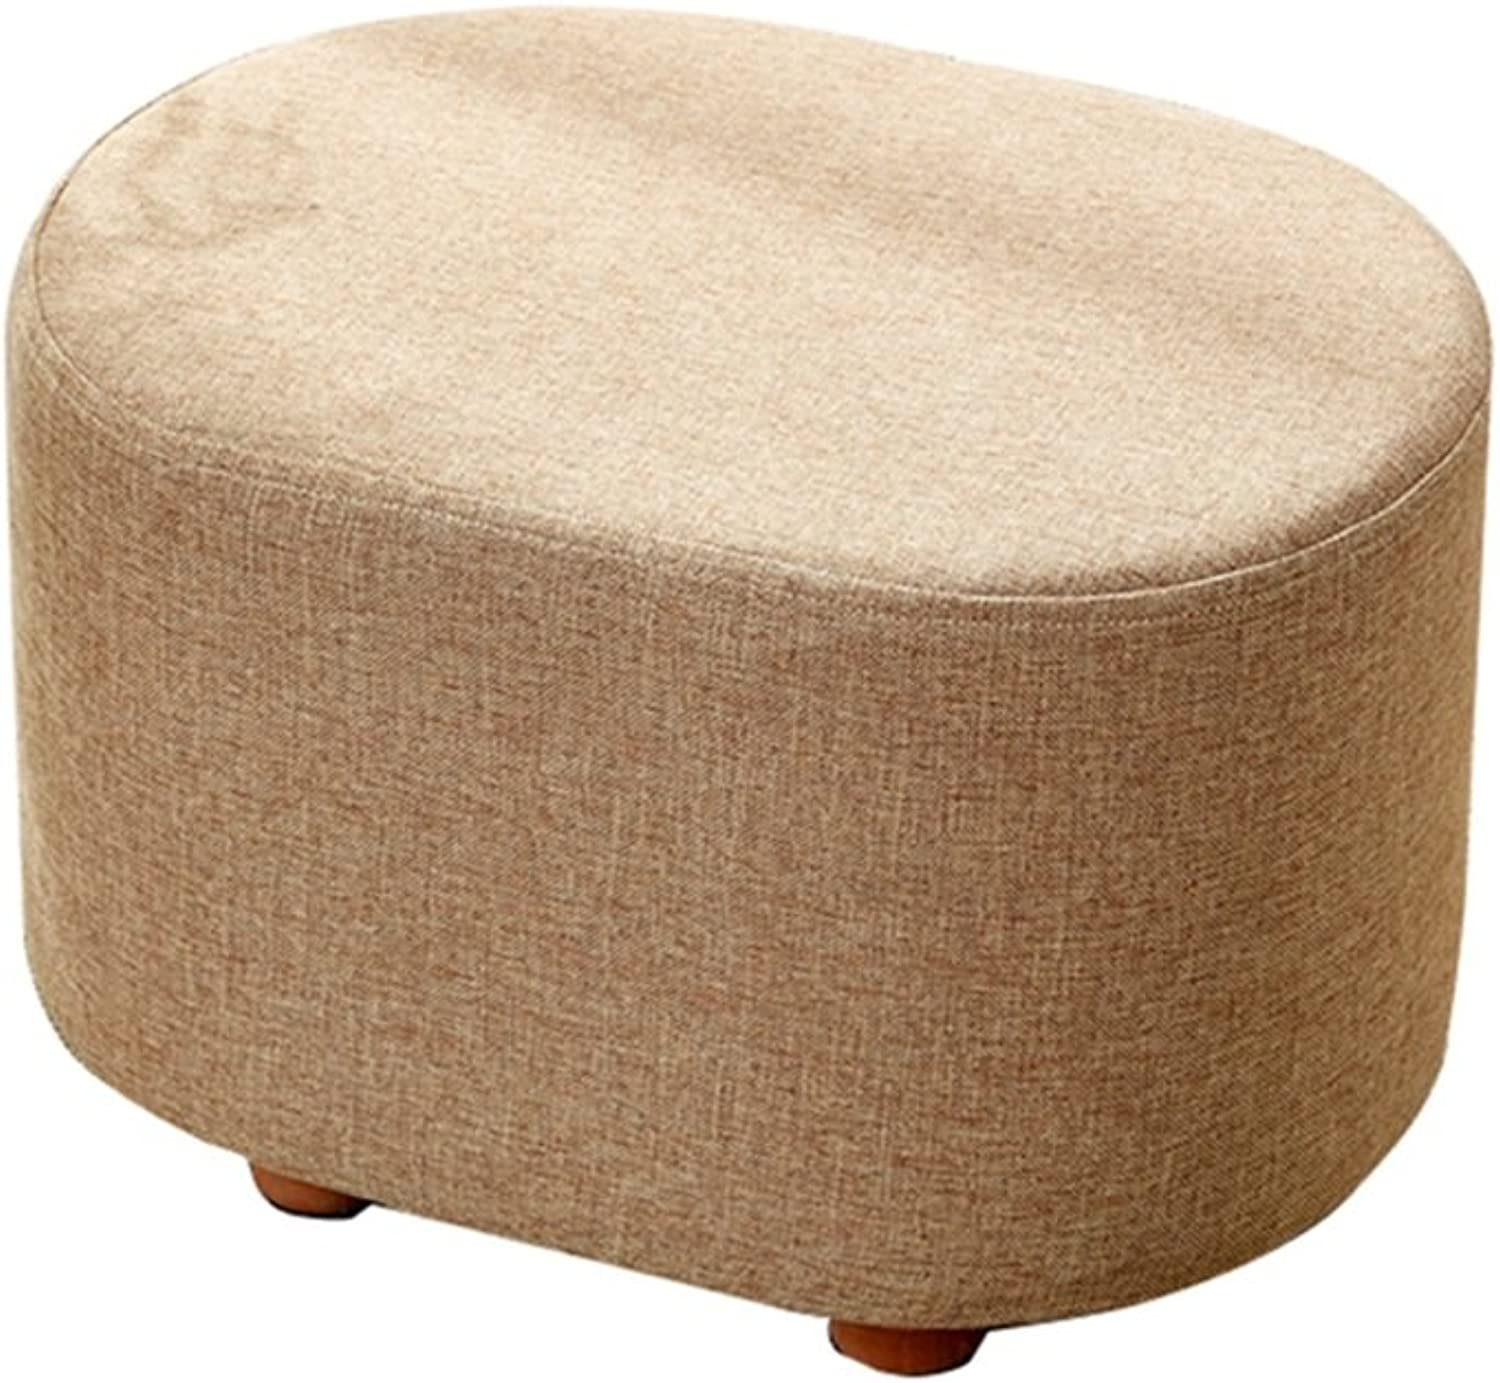 HQCC Solid Wood Fabric Footstool Change shoes Stool Sofa Stool